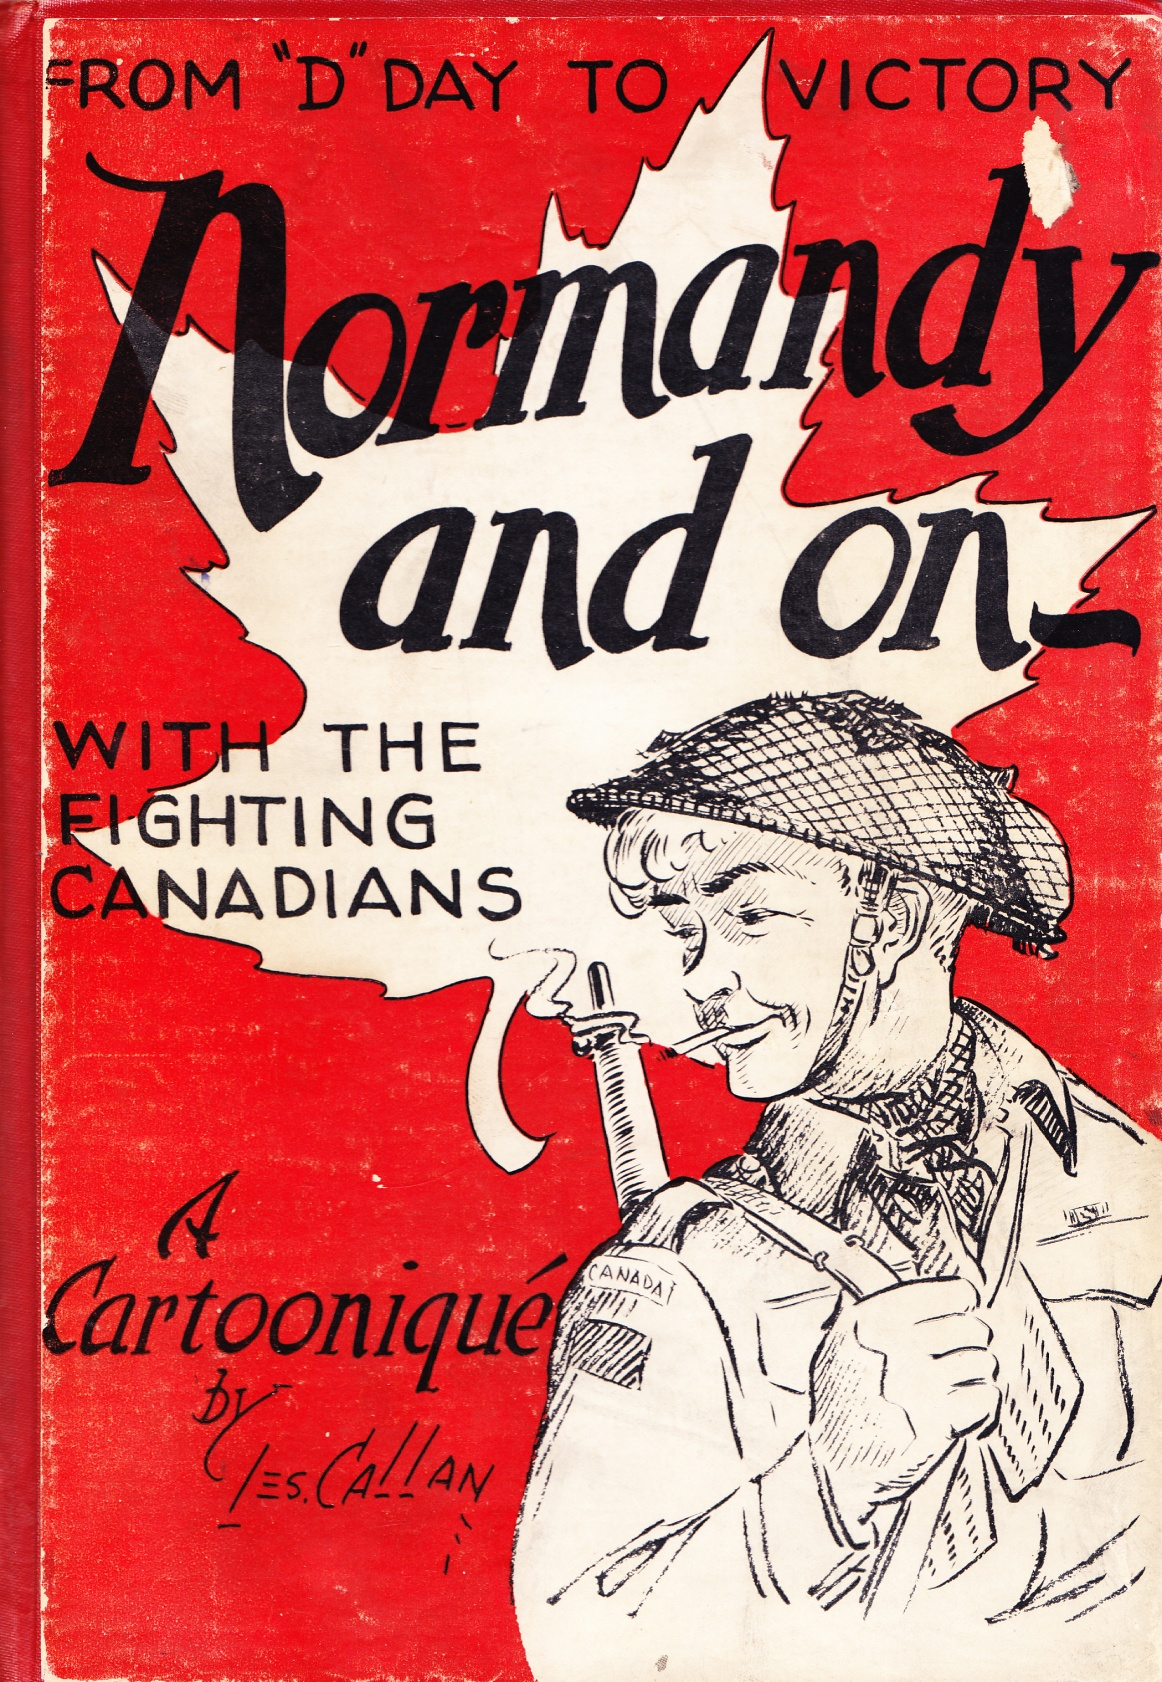 C:\Users\Robert\Documents\CARTOONING ILLUSTRATION ANIMATION\IMAGE BY CARTOONIST\C\CALLAN Les, Normandy and on -. 1945, fc.jpg